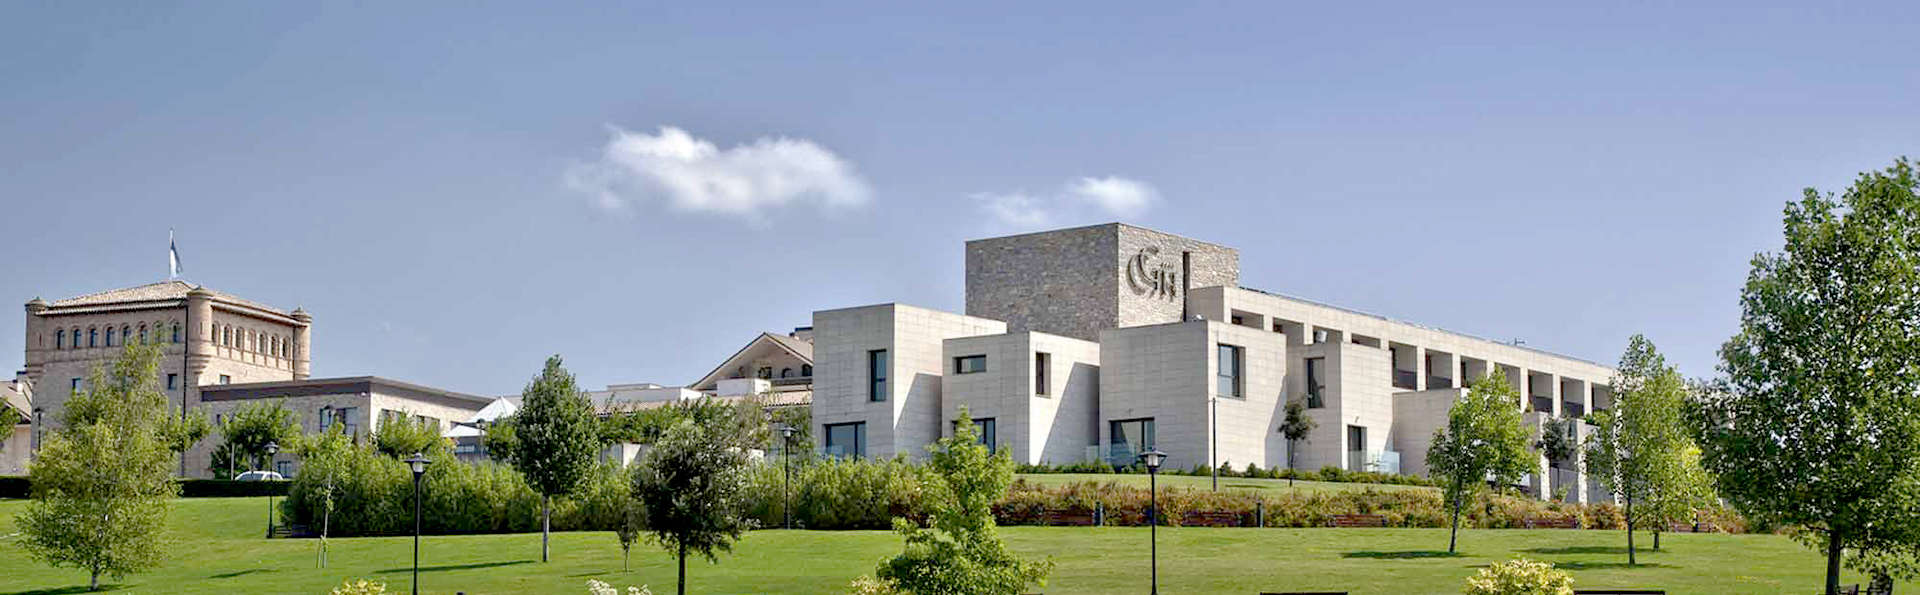 Castillo de Gorraiz Hotel Golf & Spa - Edit_Front2.jpg